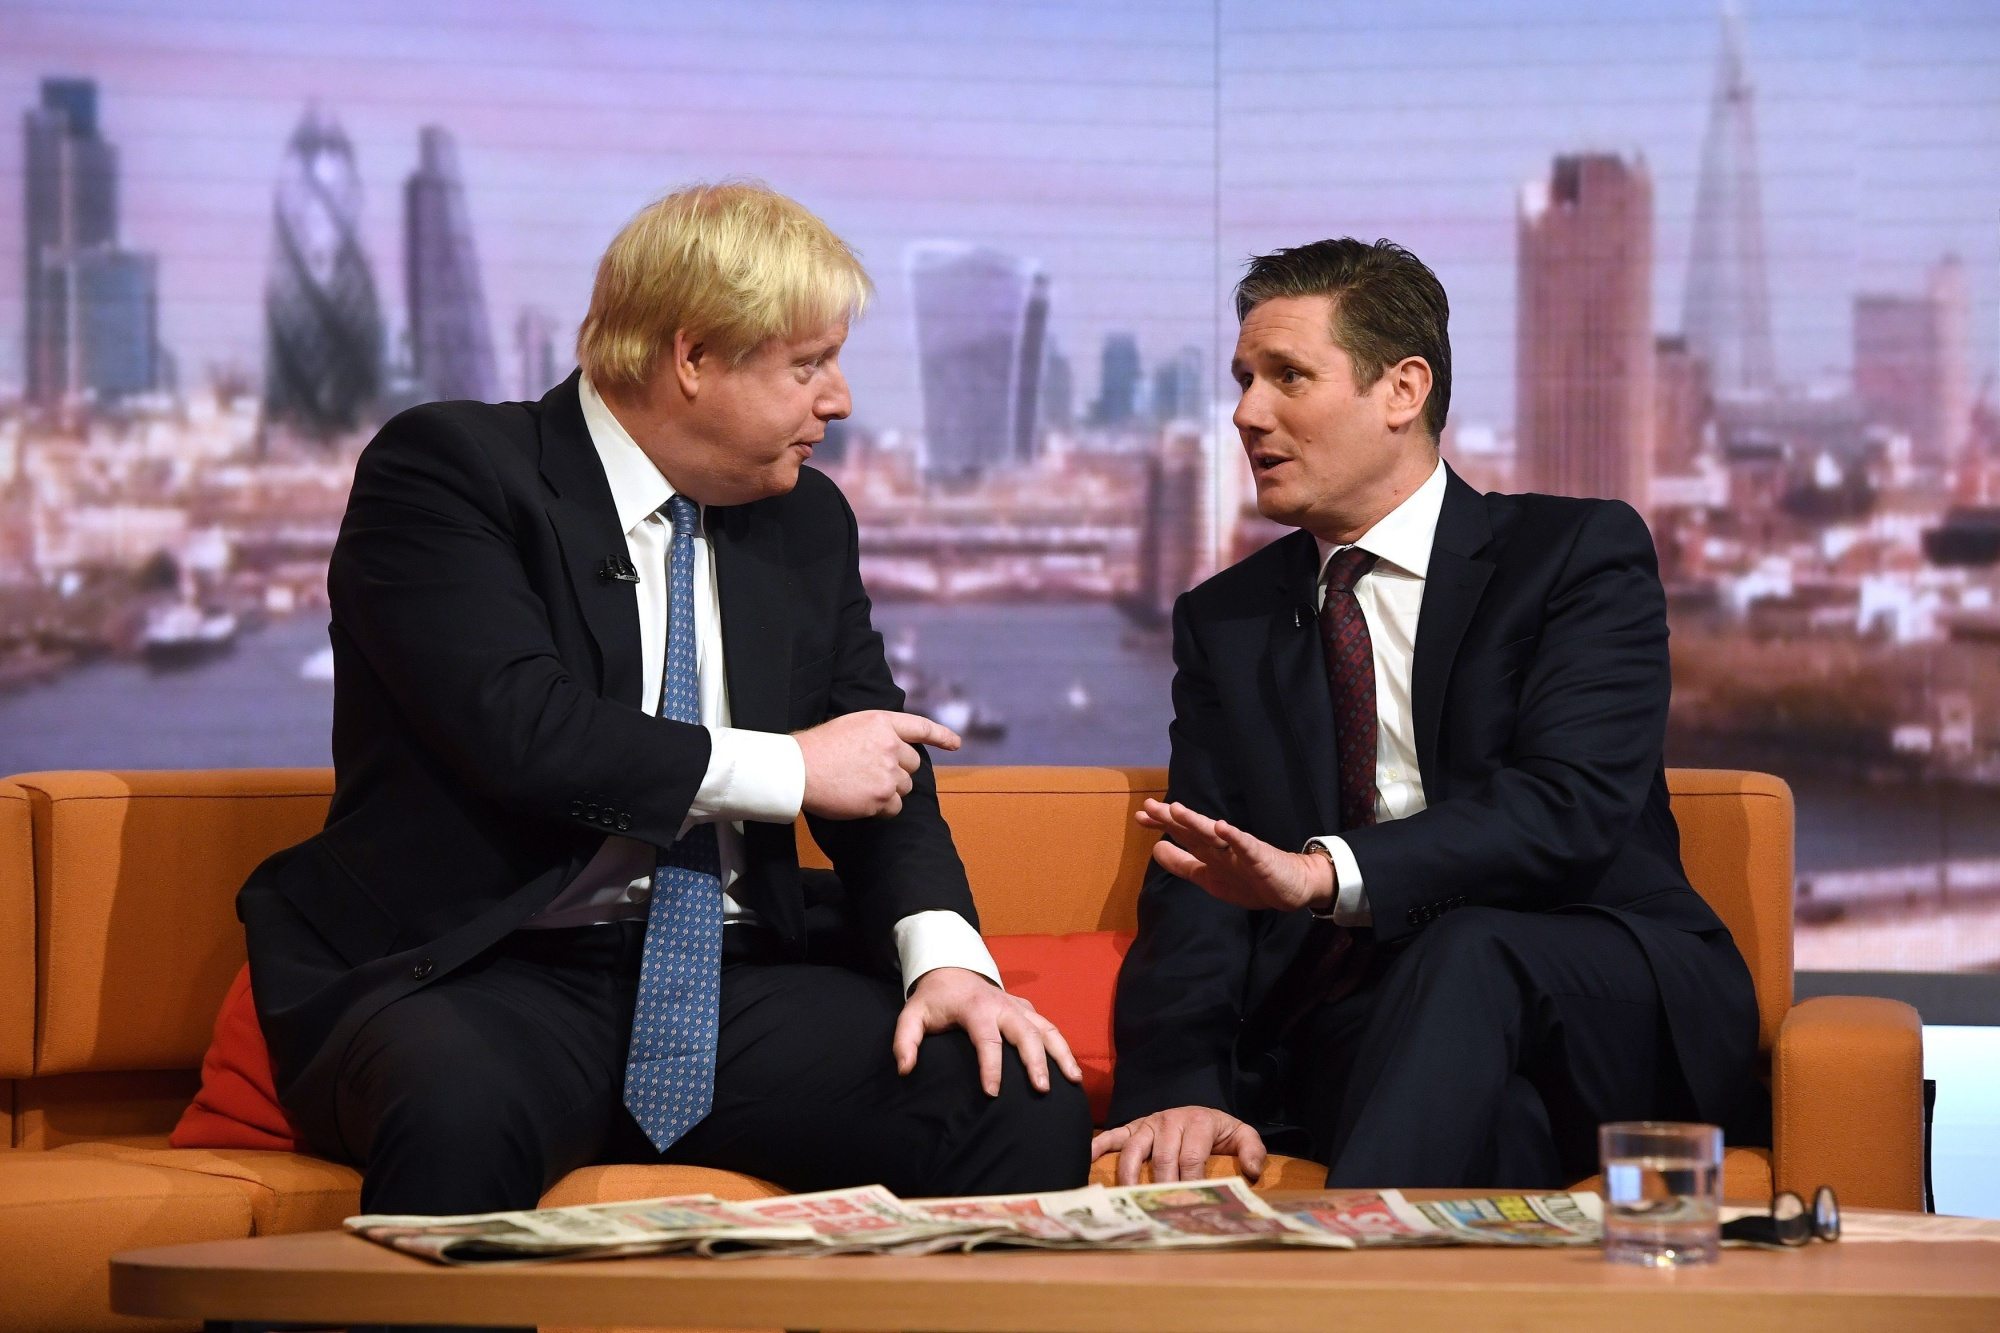 Keir Starmer: Boris Johnson Finally Has a Rival to Worry About - Bloomberg